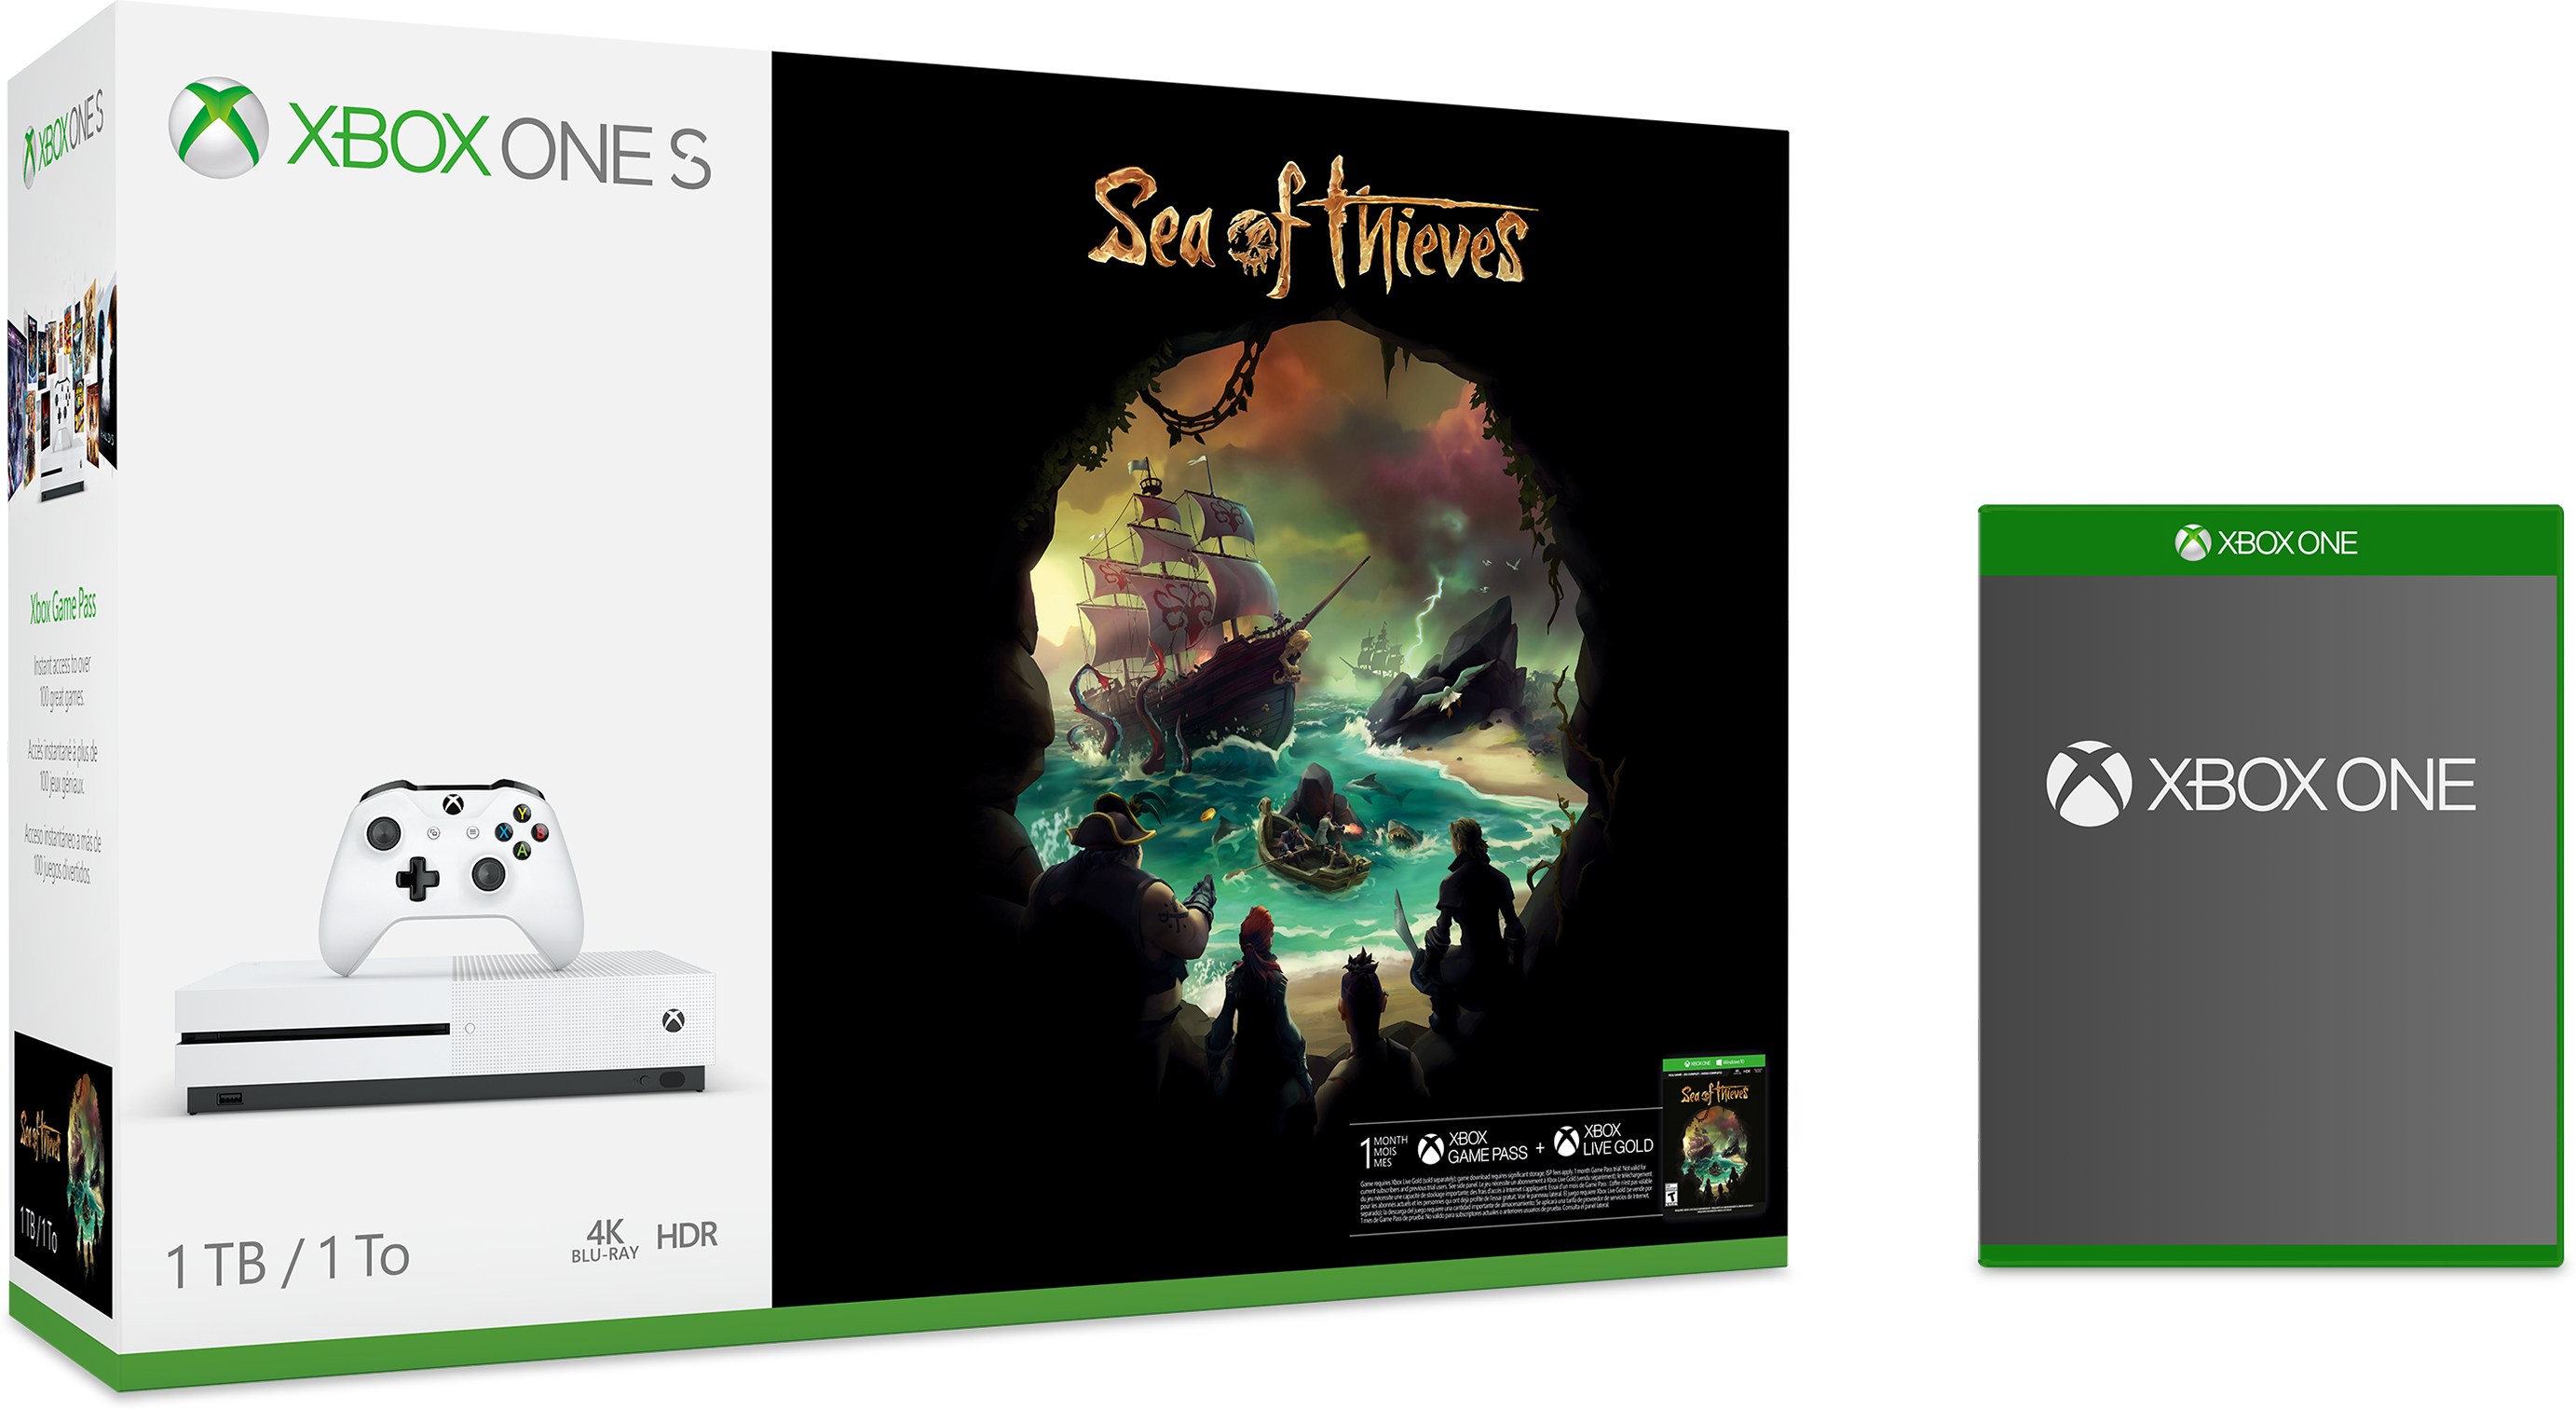 Xbox One S Sea of Thieves bundle with free game